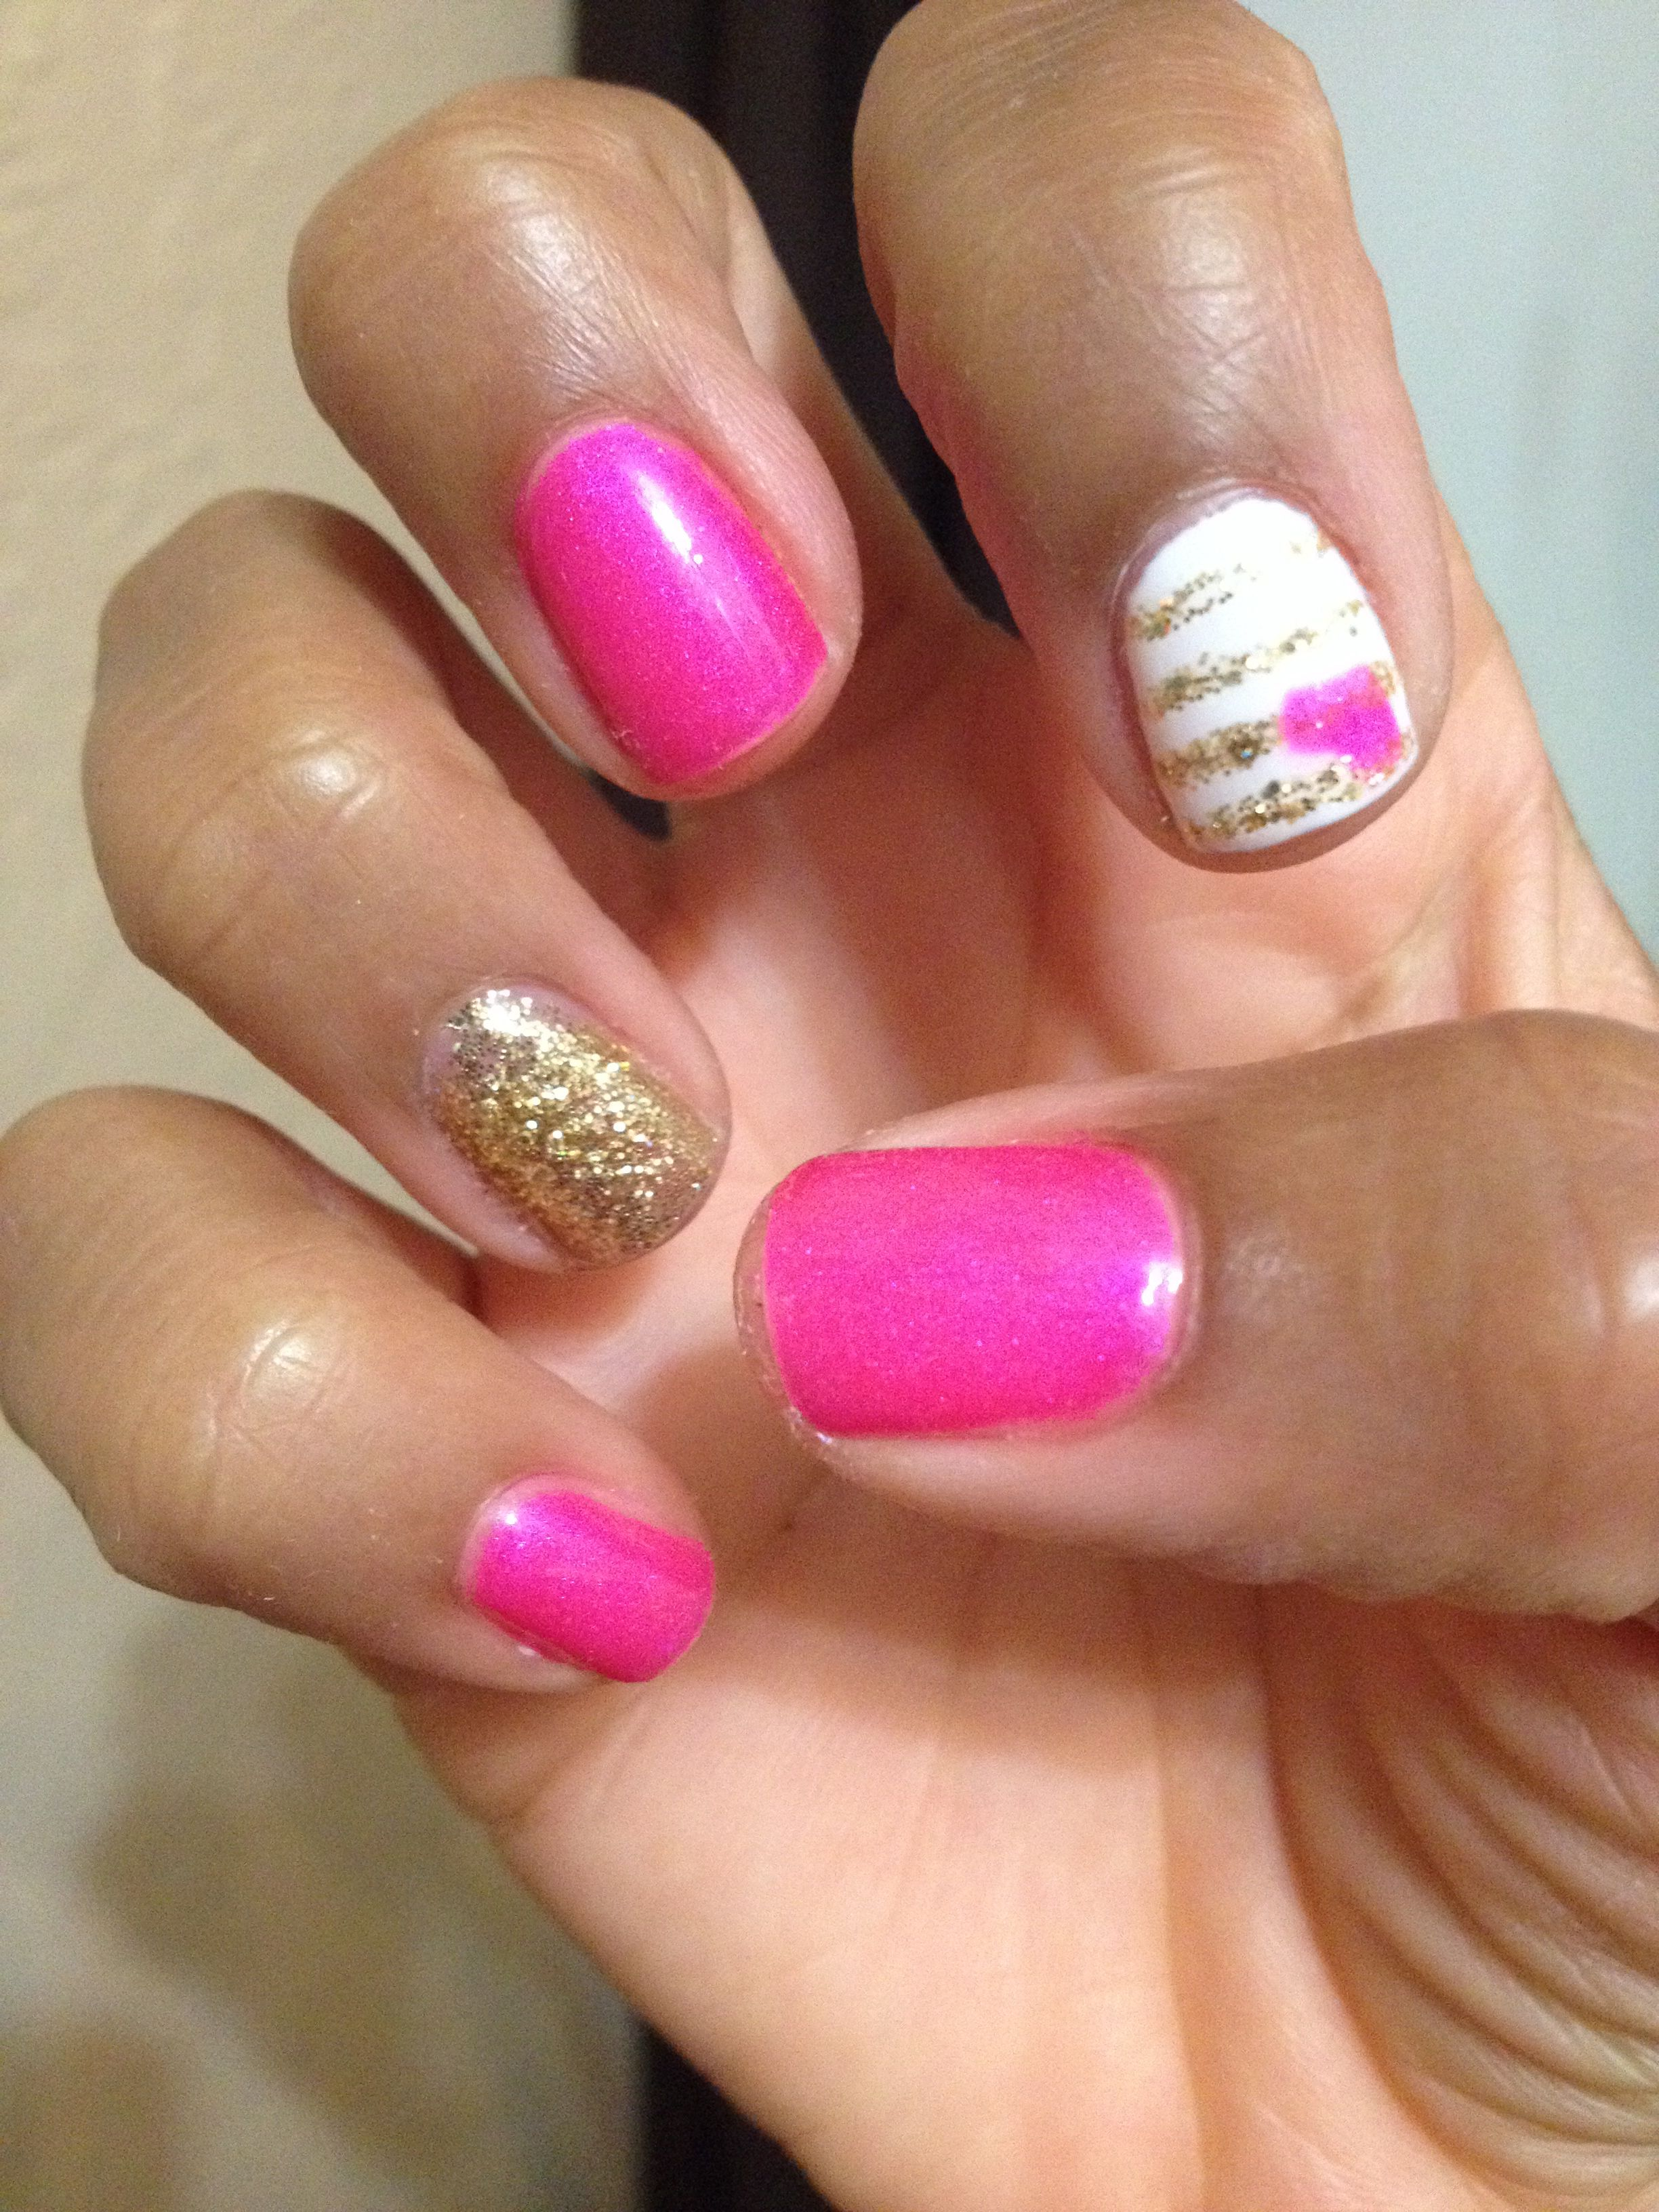 Diy pink gel nails with gold and white accents my nails diy pink gel nails with gold and white accents solutioingenieria Images